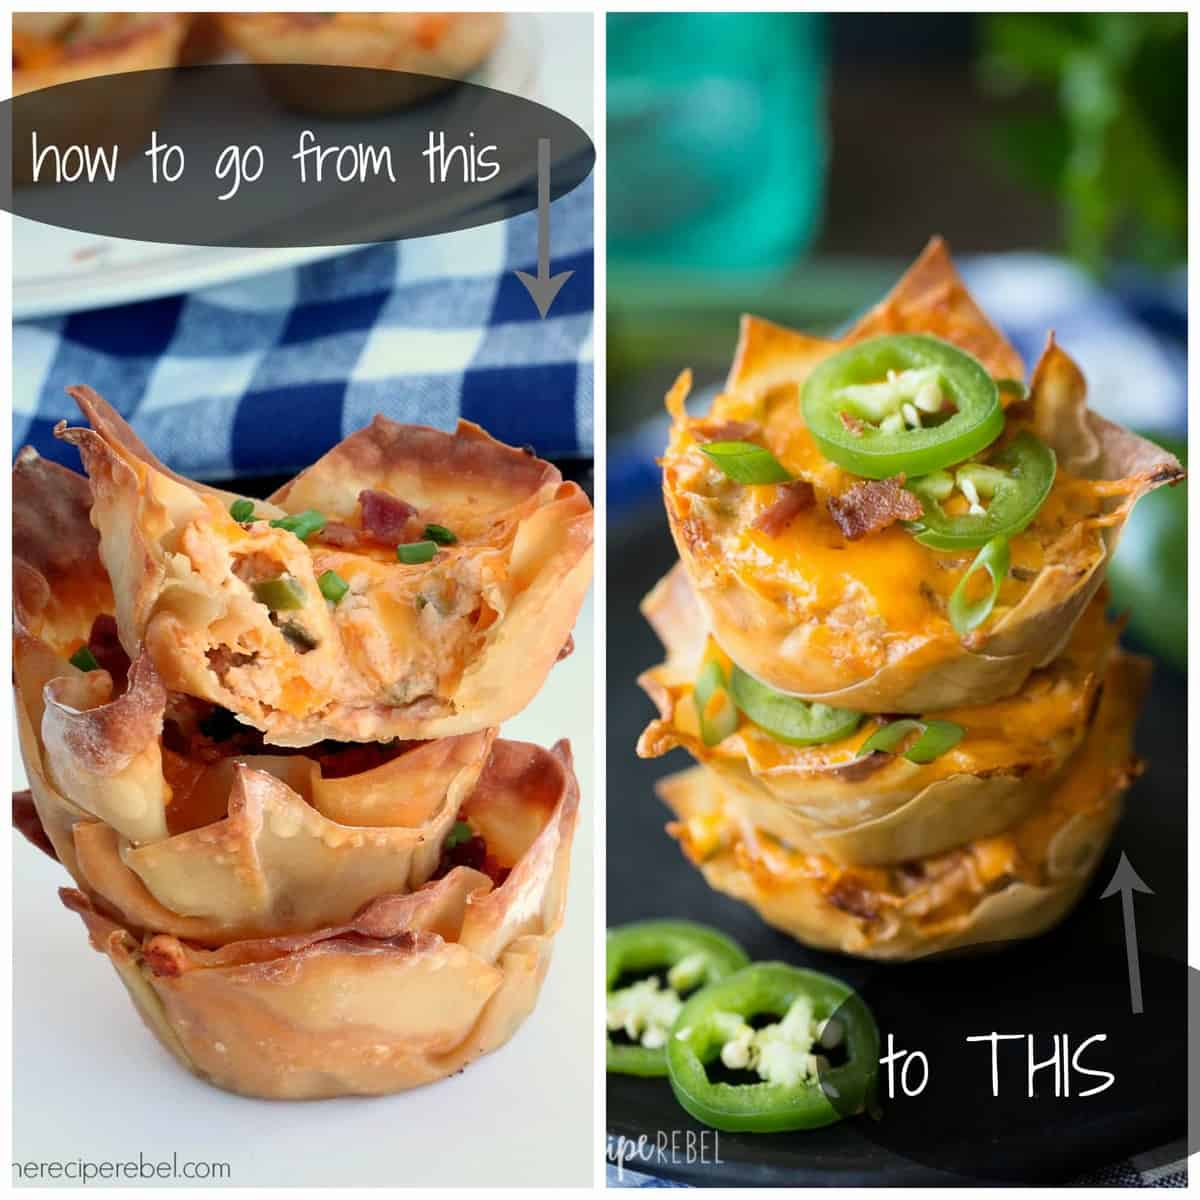 Good Meals To Cook: How To Make Food Look Good: Jalapeno Popper Cupcakes